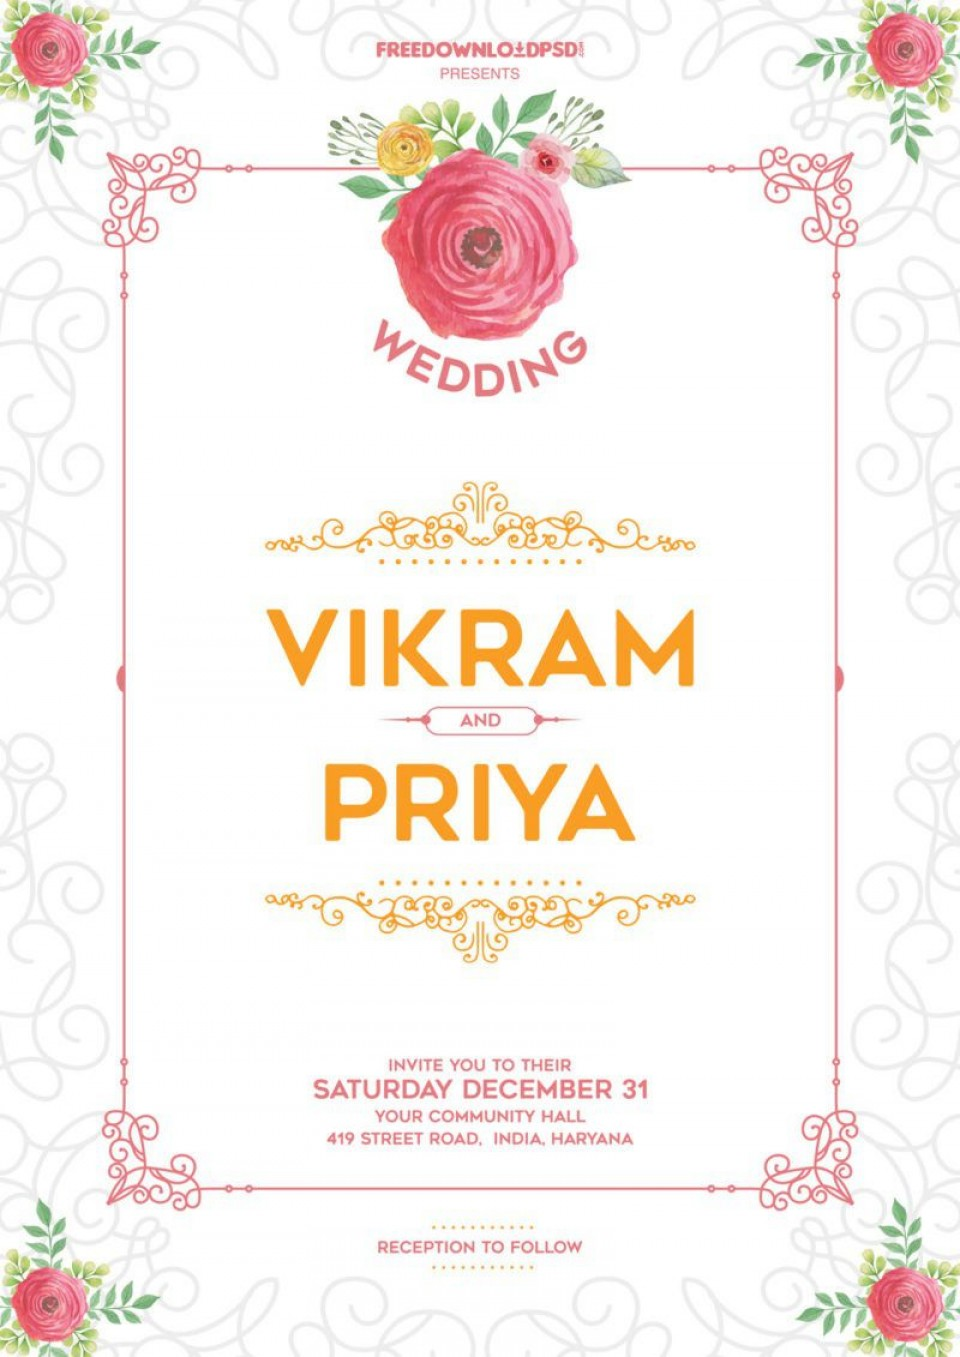 010 Impressive Free Download Invitation Card Design Software High Definition  Wedding For Pc Indian960